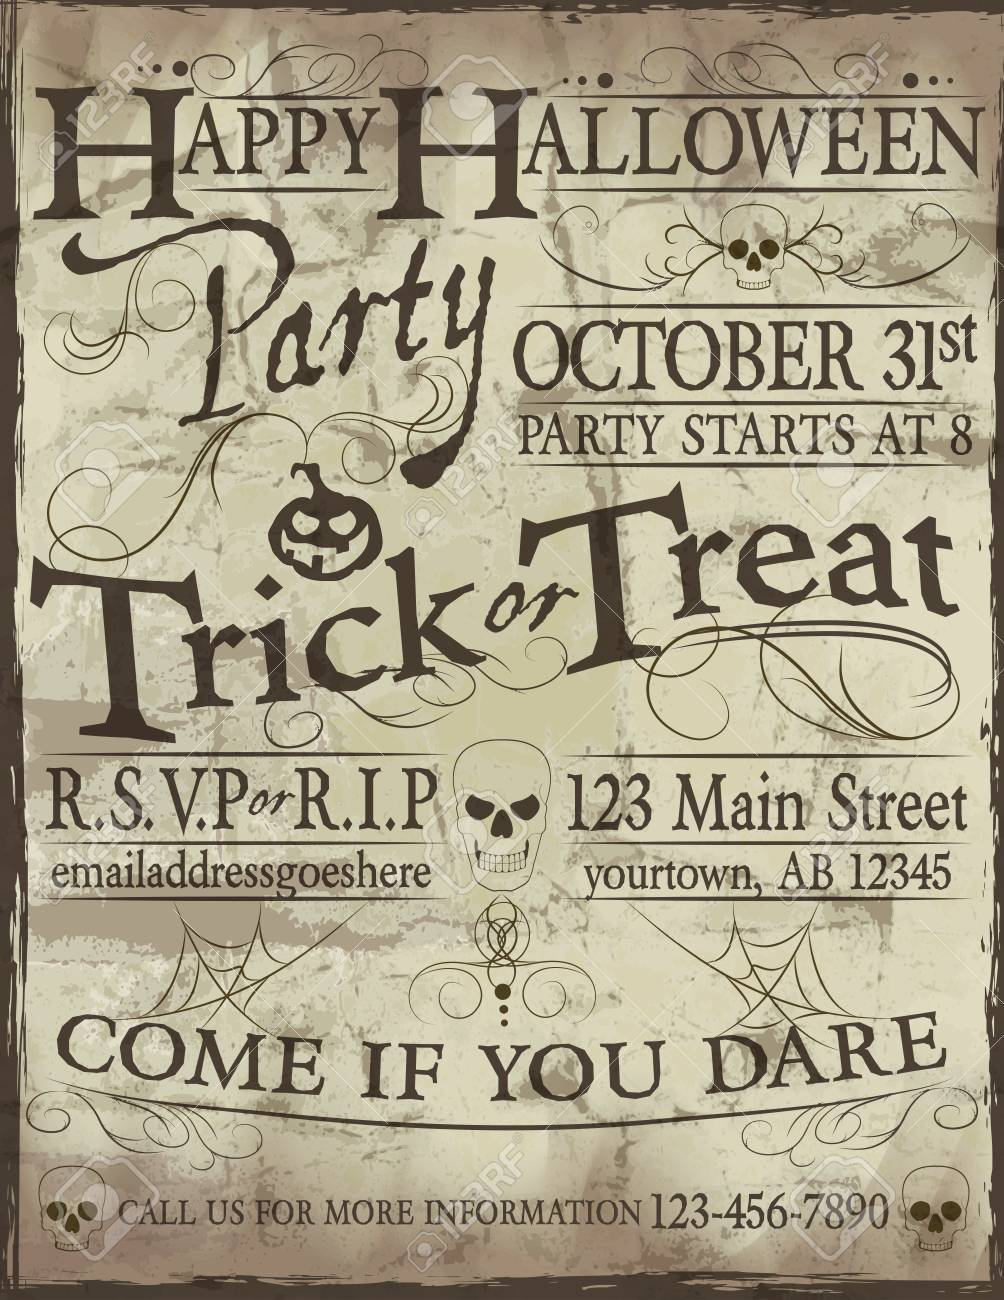 Fun Hand Lettering Happy Halloween Party Invitation Template Royalty ...